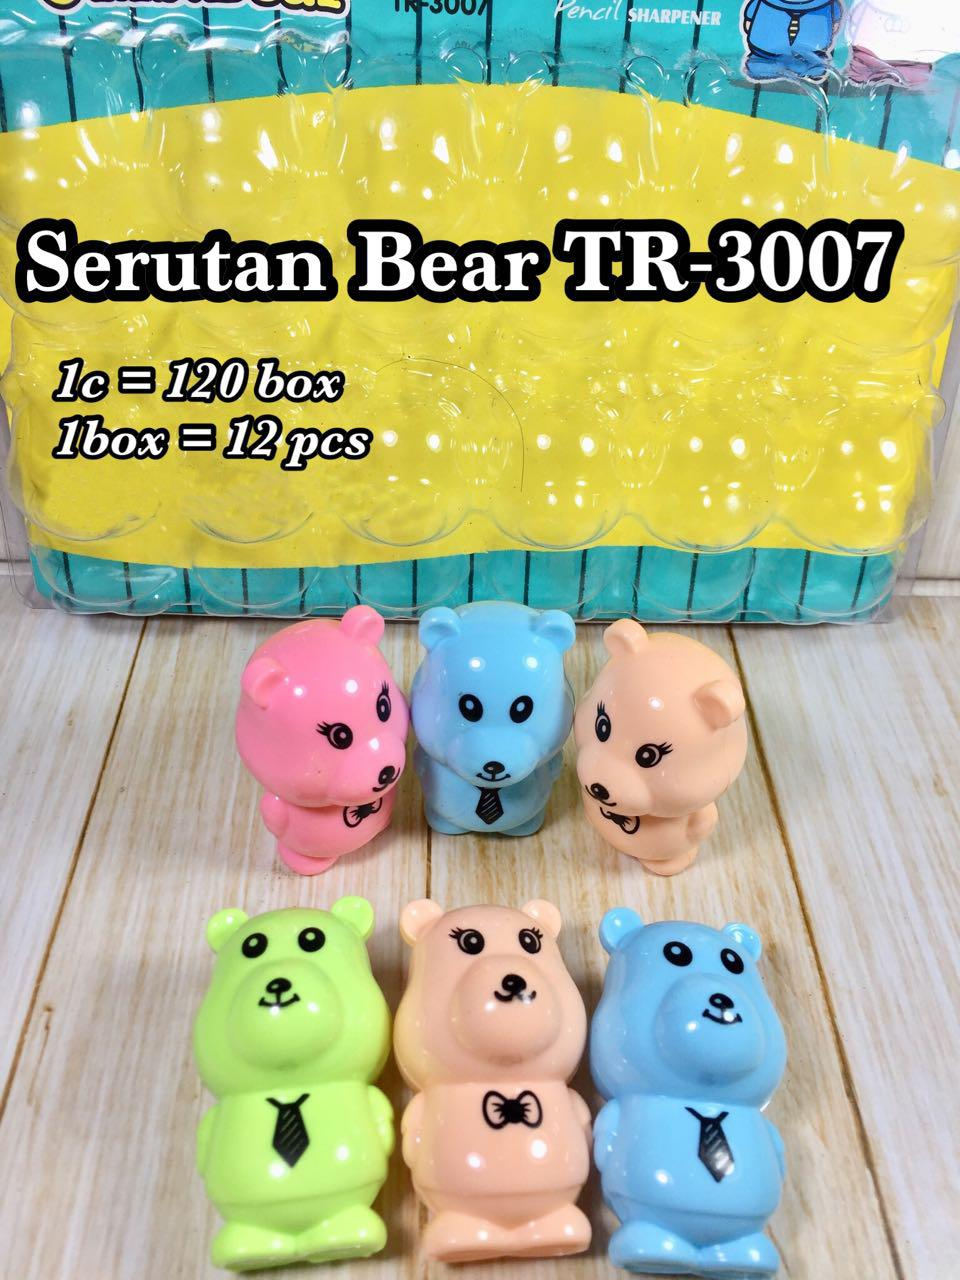 Sell Serutan Beruang Tr 3007 From Indonesia By Cv Dadi Sejahtera Box Folder Alat Tulis Sejahteracheap Price